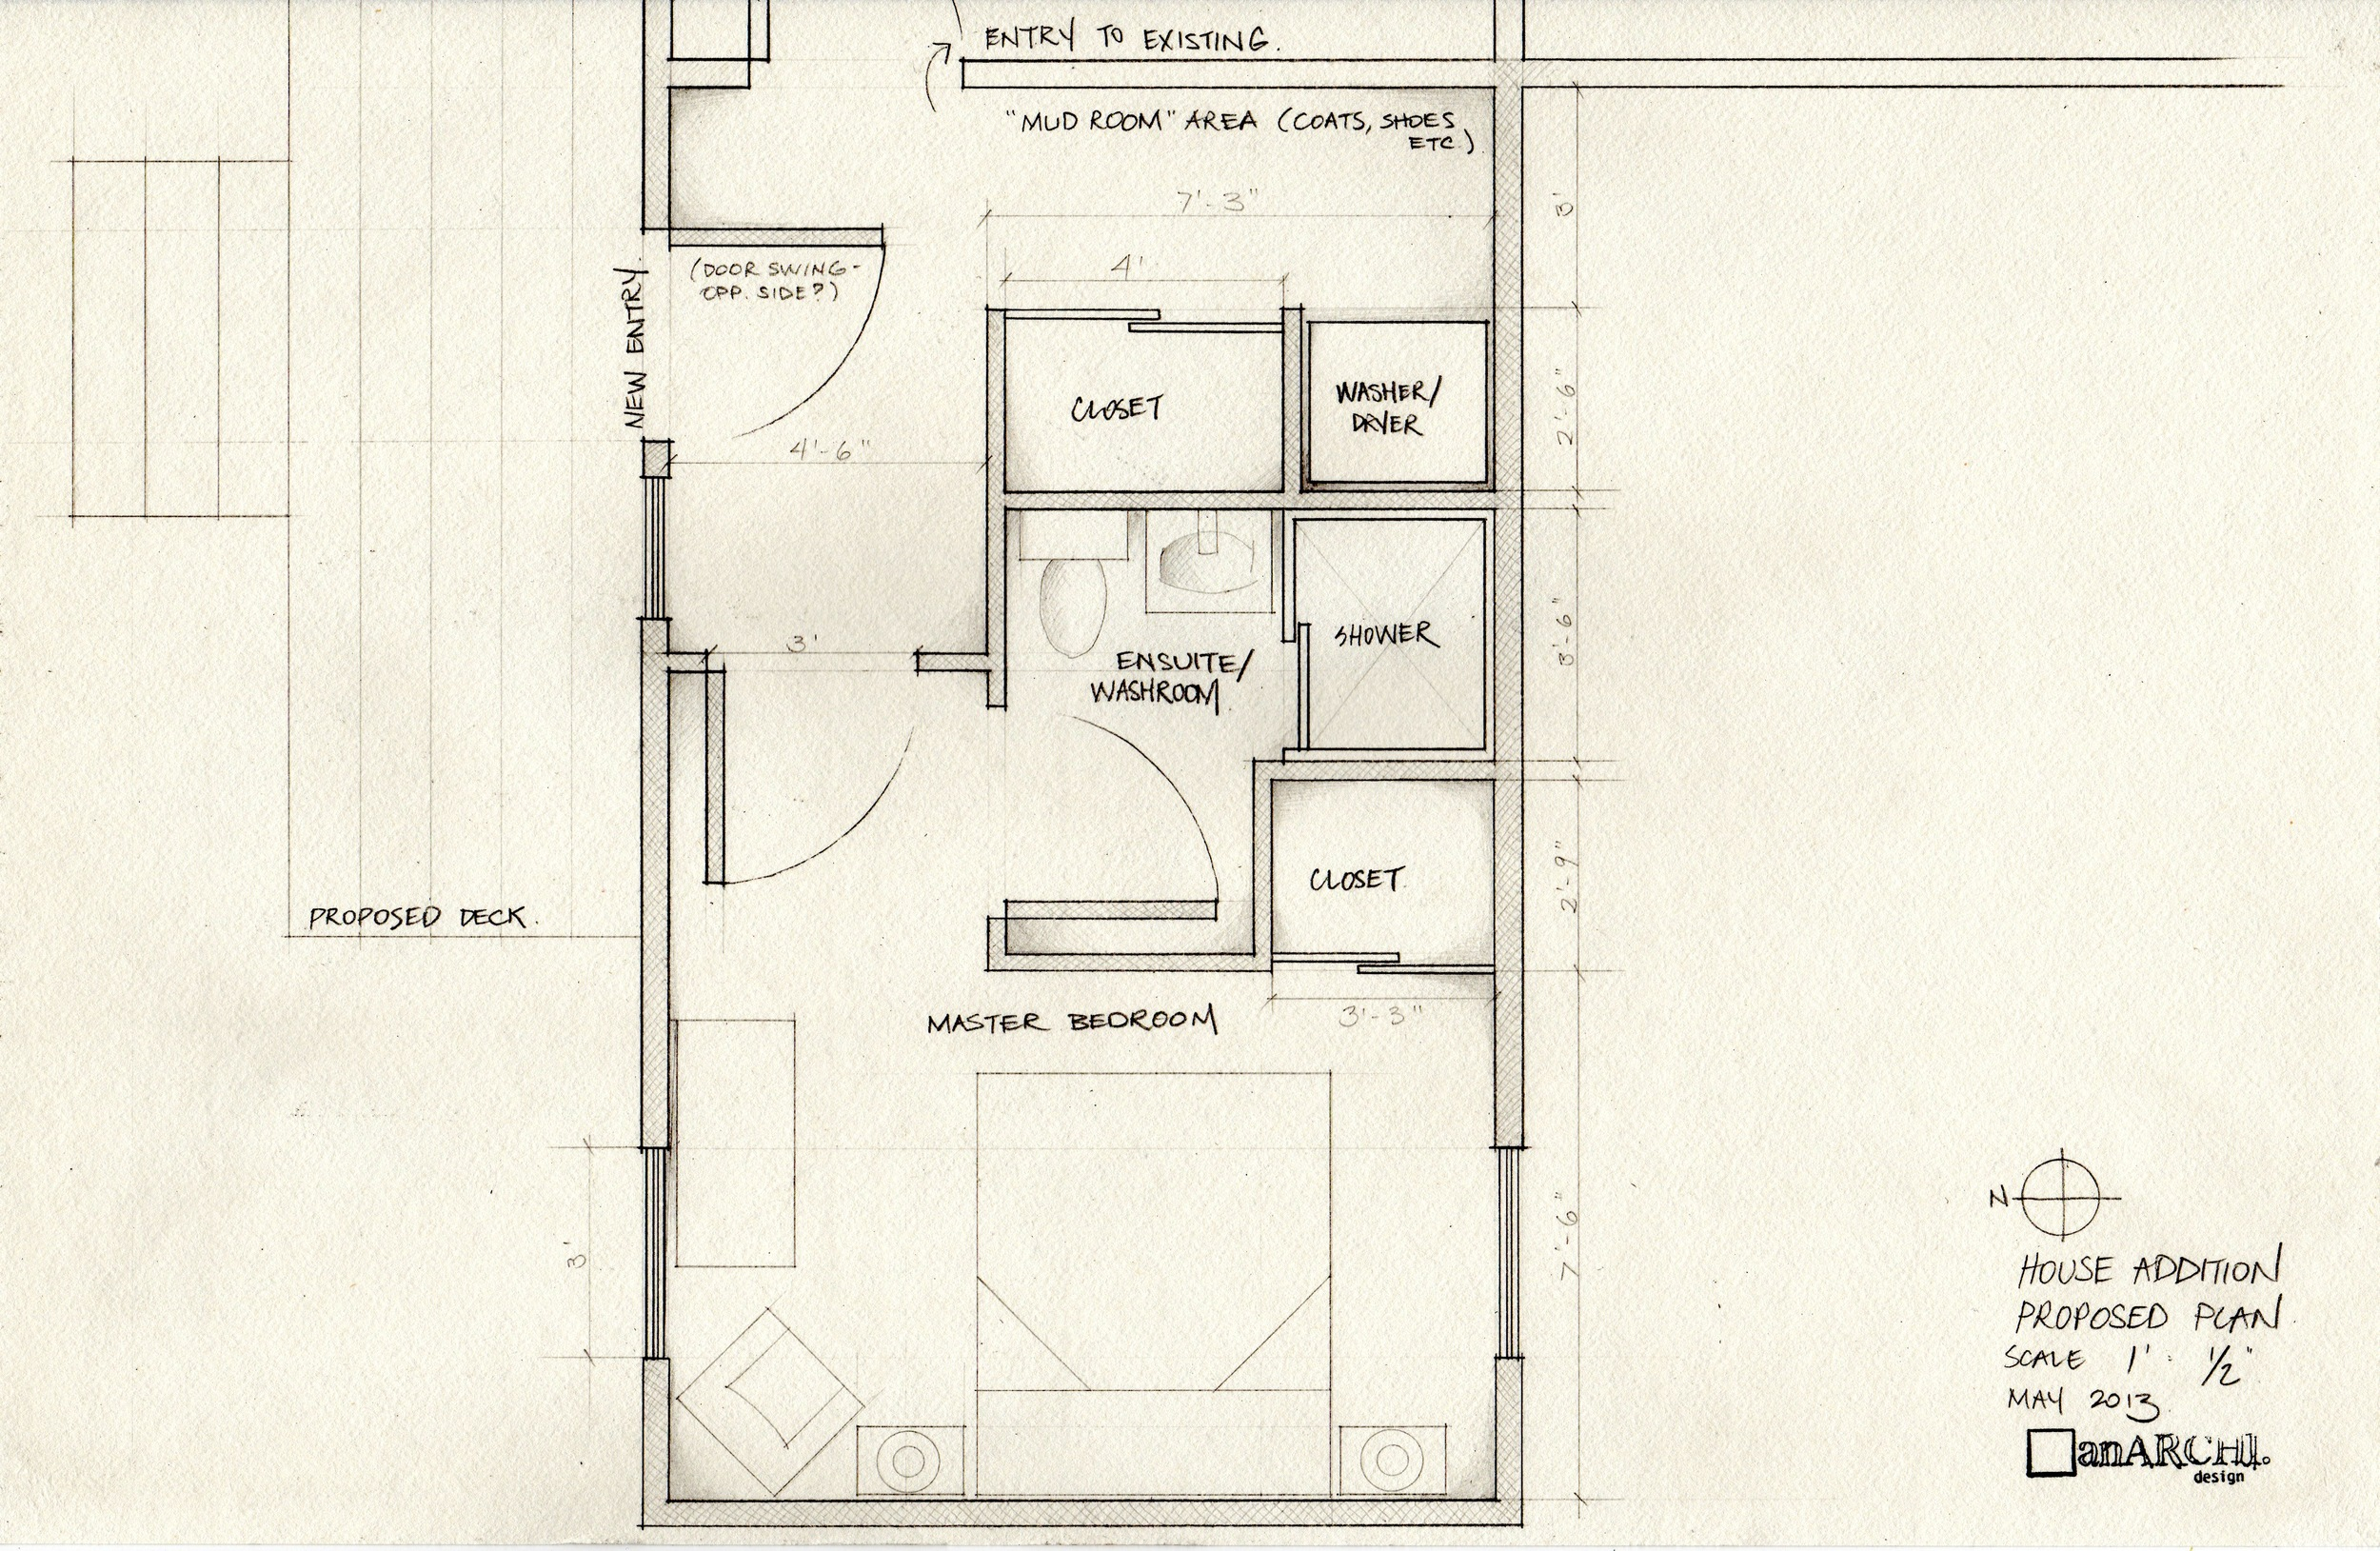 Plan of proposed addition